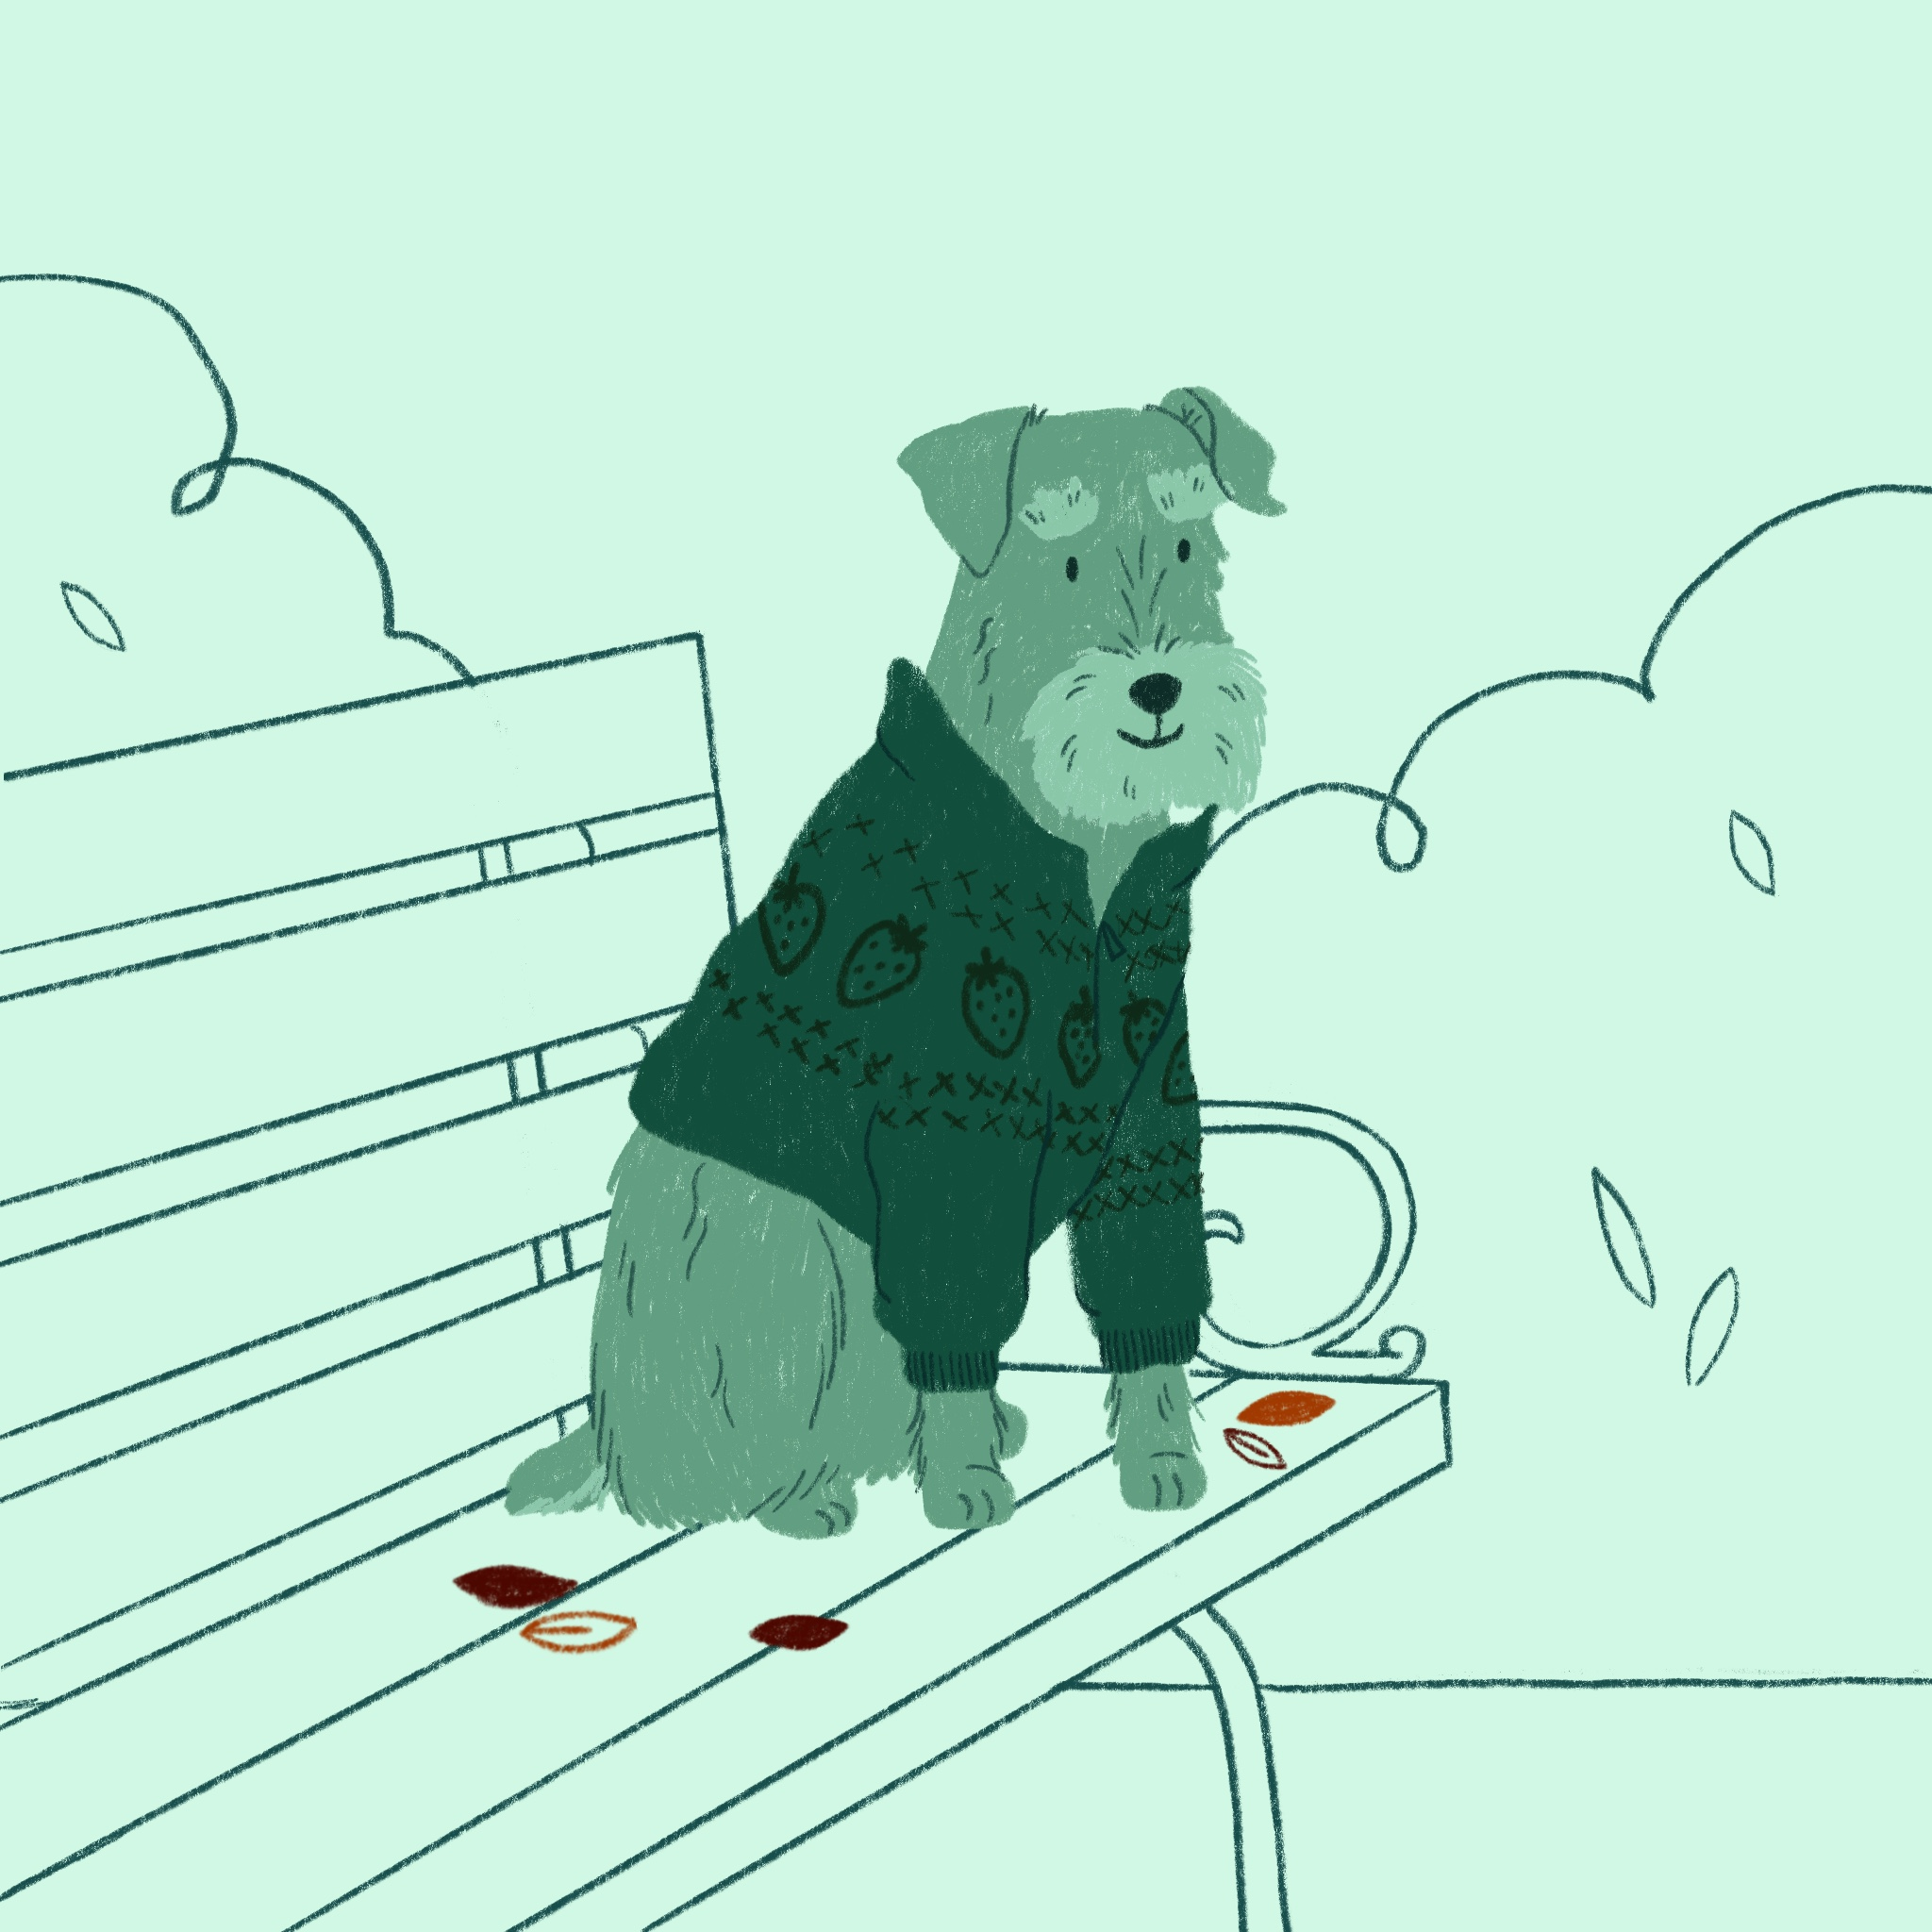 A schnauzer in a sweater sits on a park bench